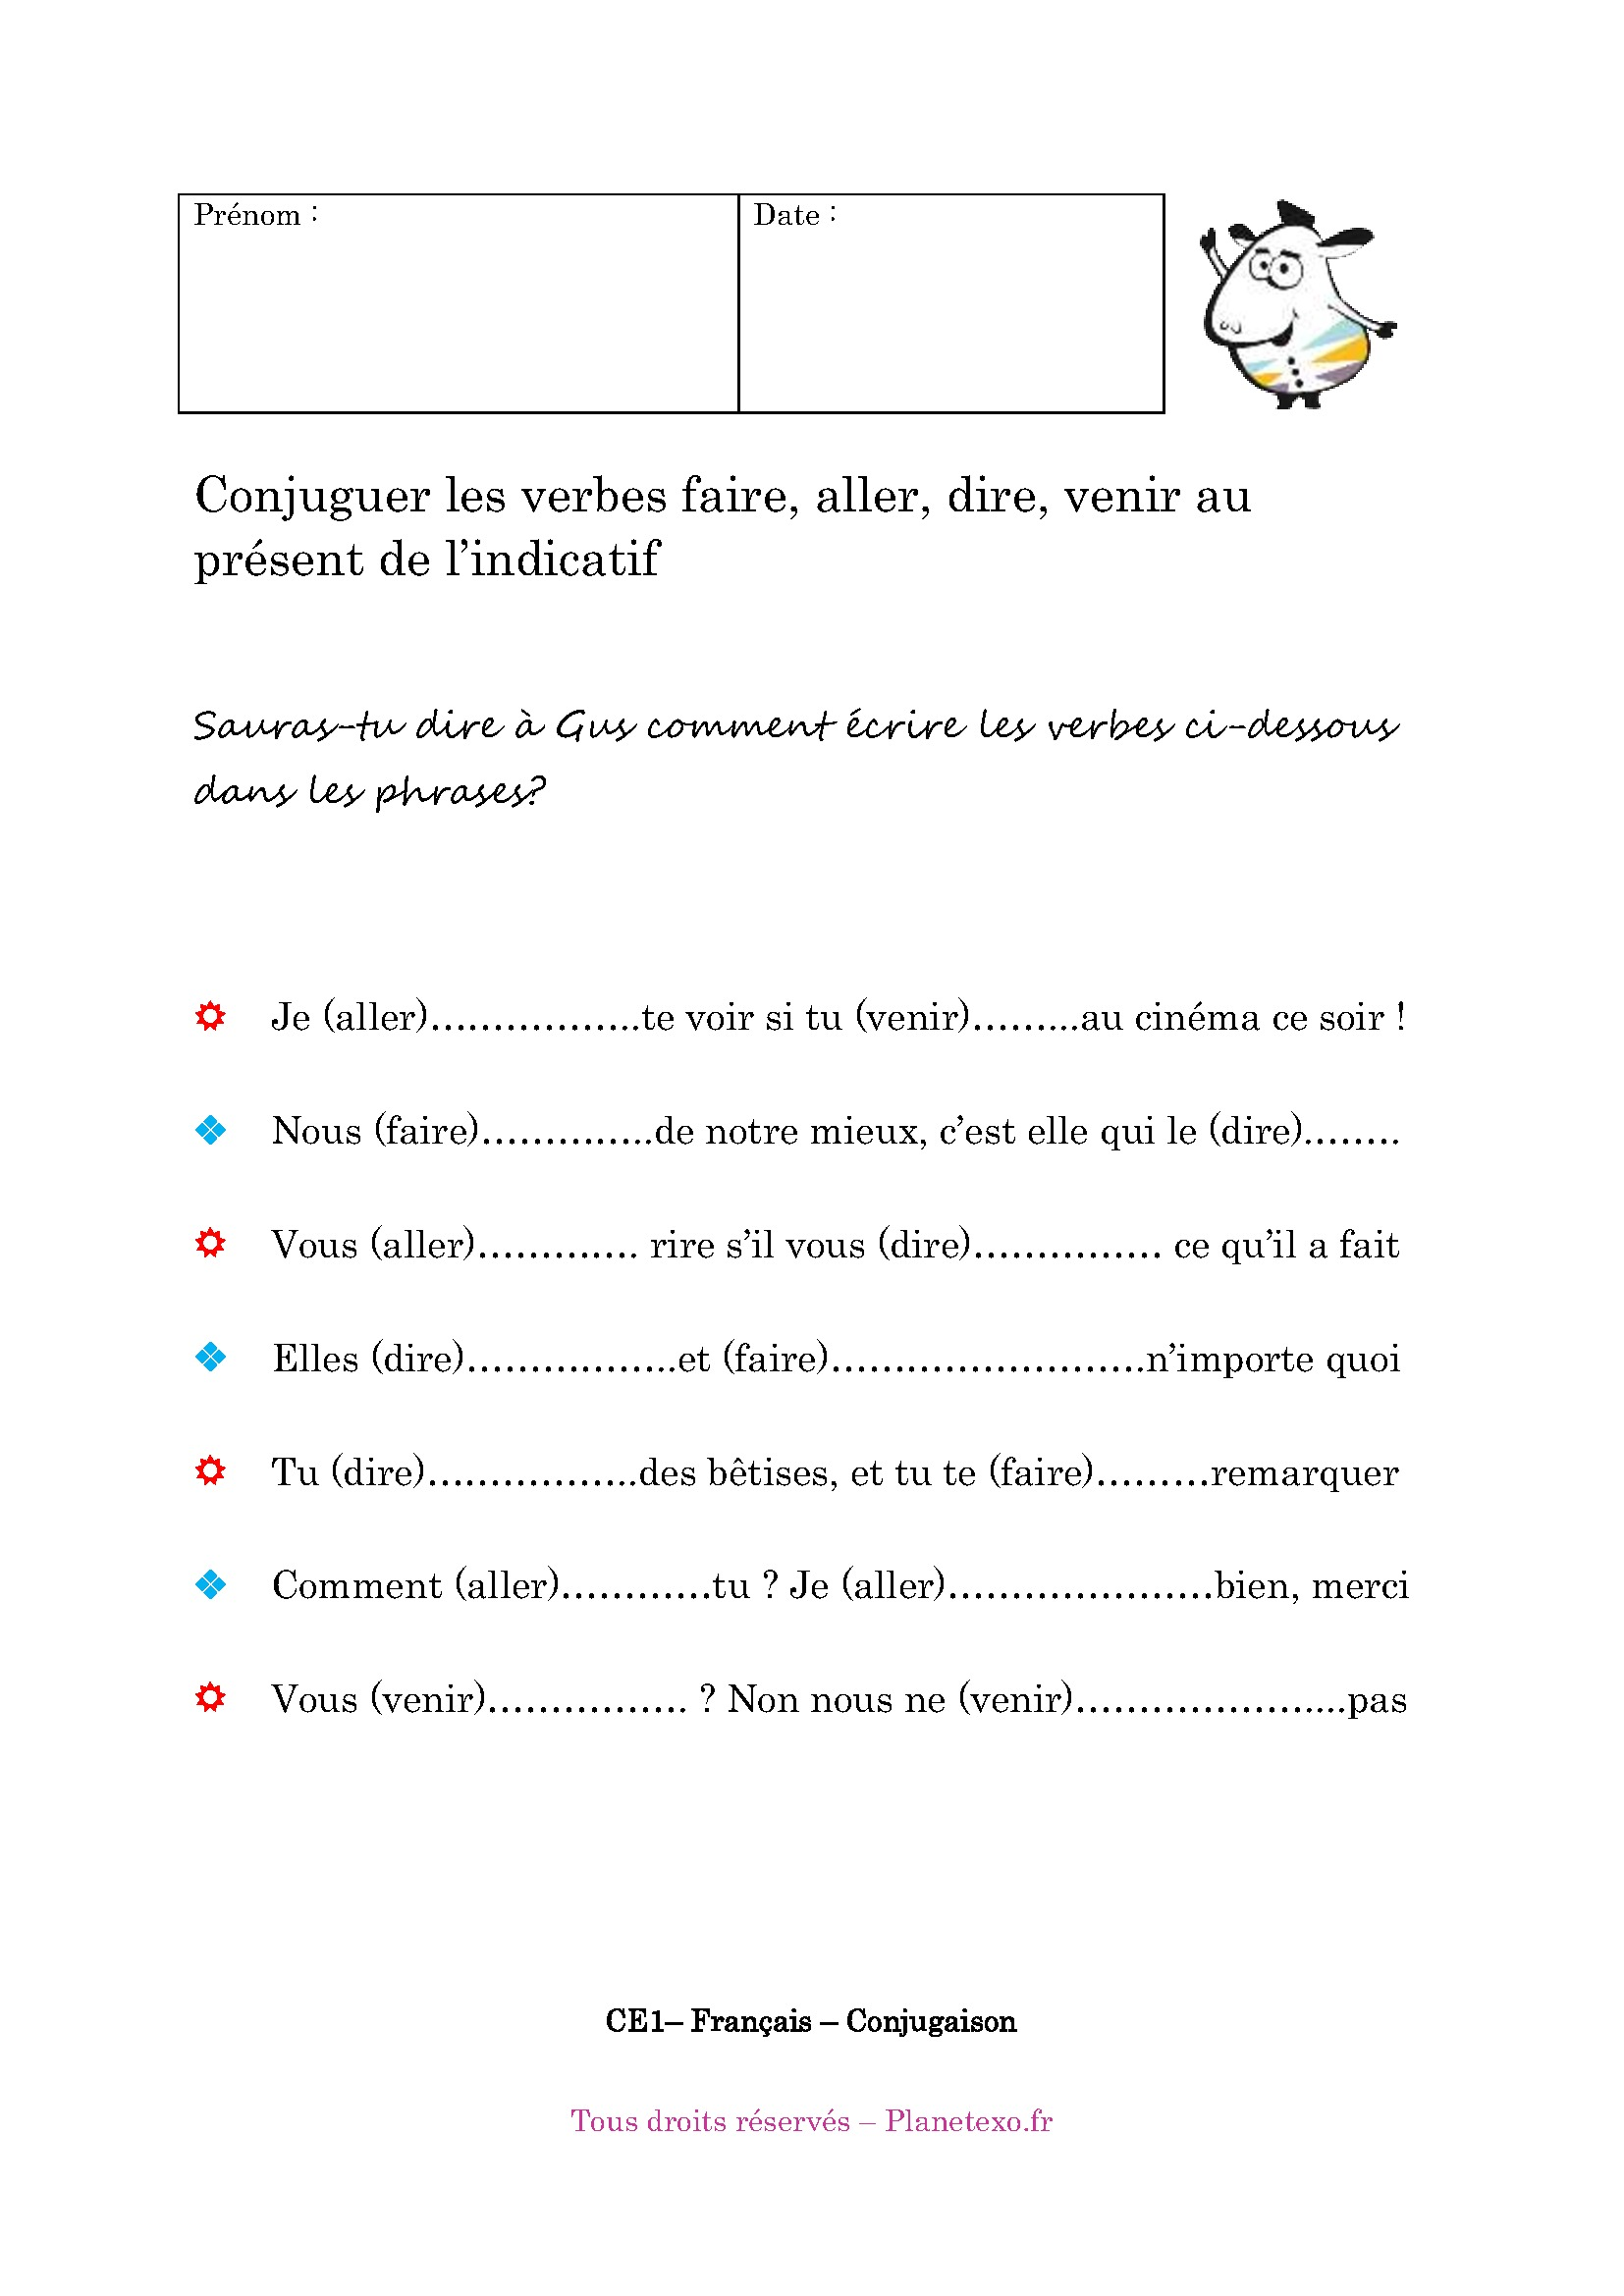 Worksheet Sur Le Verbe Faire Printable Worksheets And Activities For Teachers Parents Tutors And Homeschool Families